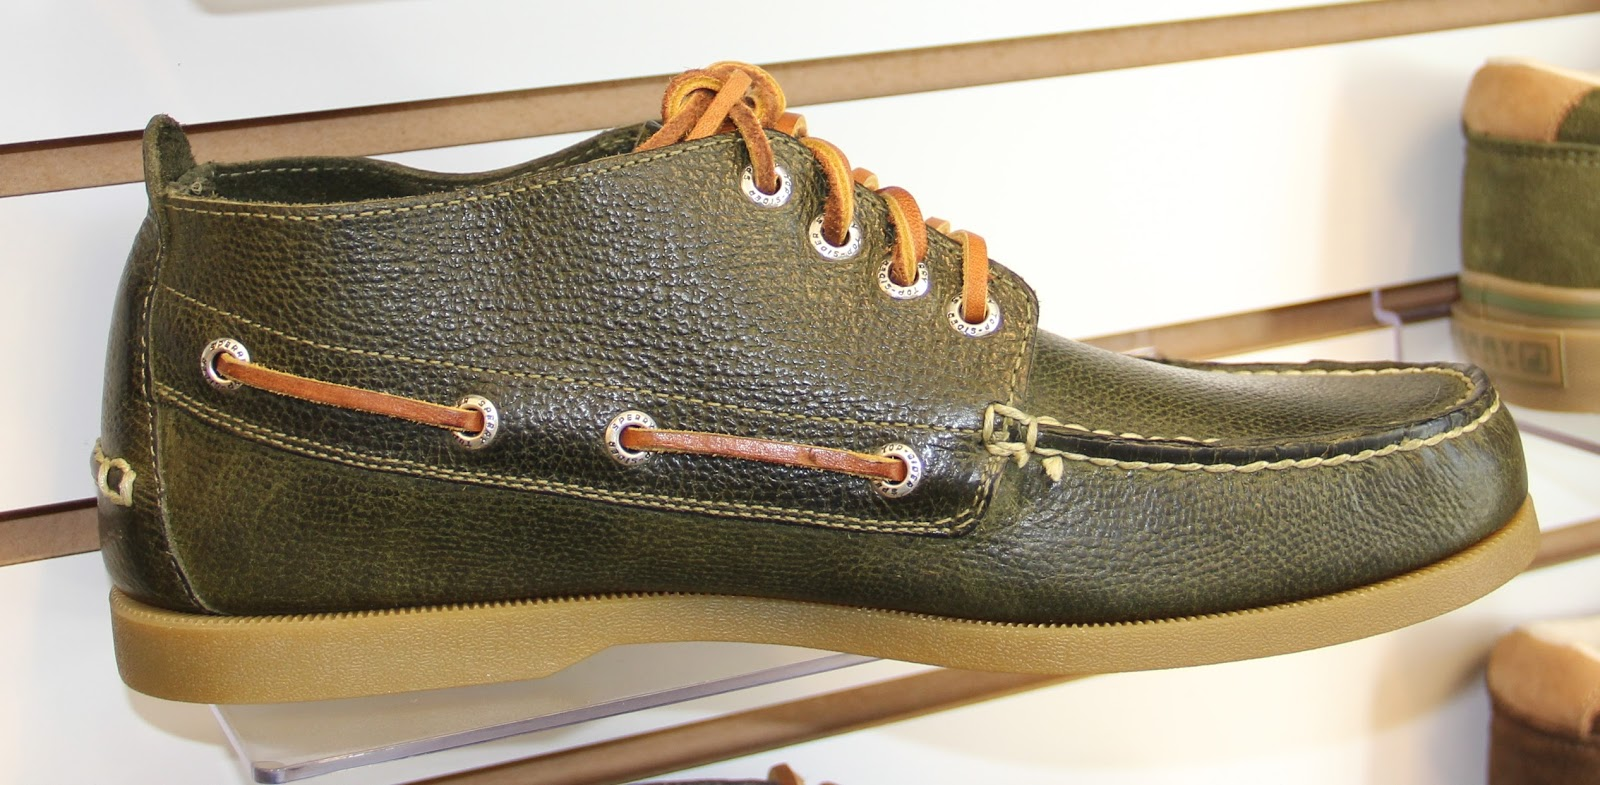 Sperry Top Sider Mens Fall 2014 Footwear Espro Napoly Genuine Leather Portofolio Bag Black A O Chukka Boardwalk 110 Here In Forest Hand Sewn Uppers W True Moccasin Construction Raw Hide Lace Eva Heel Cup For Shock